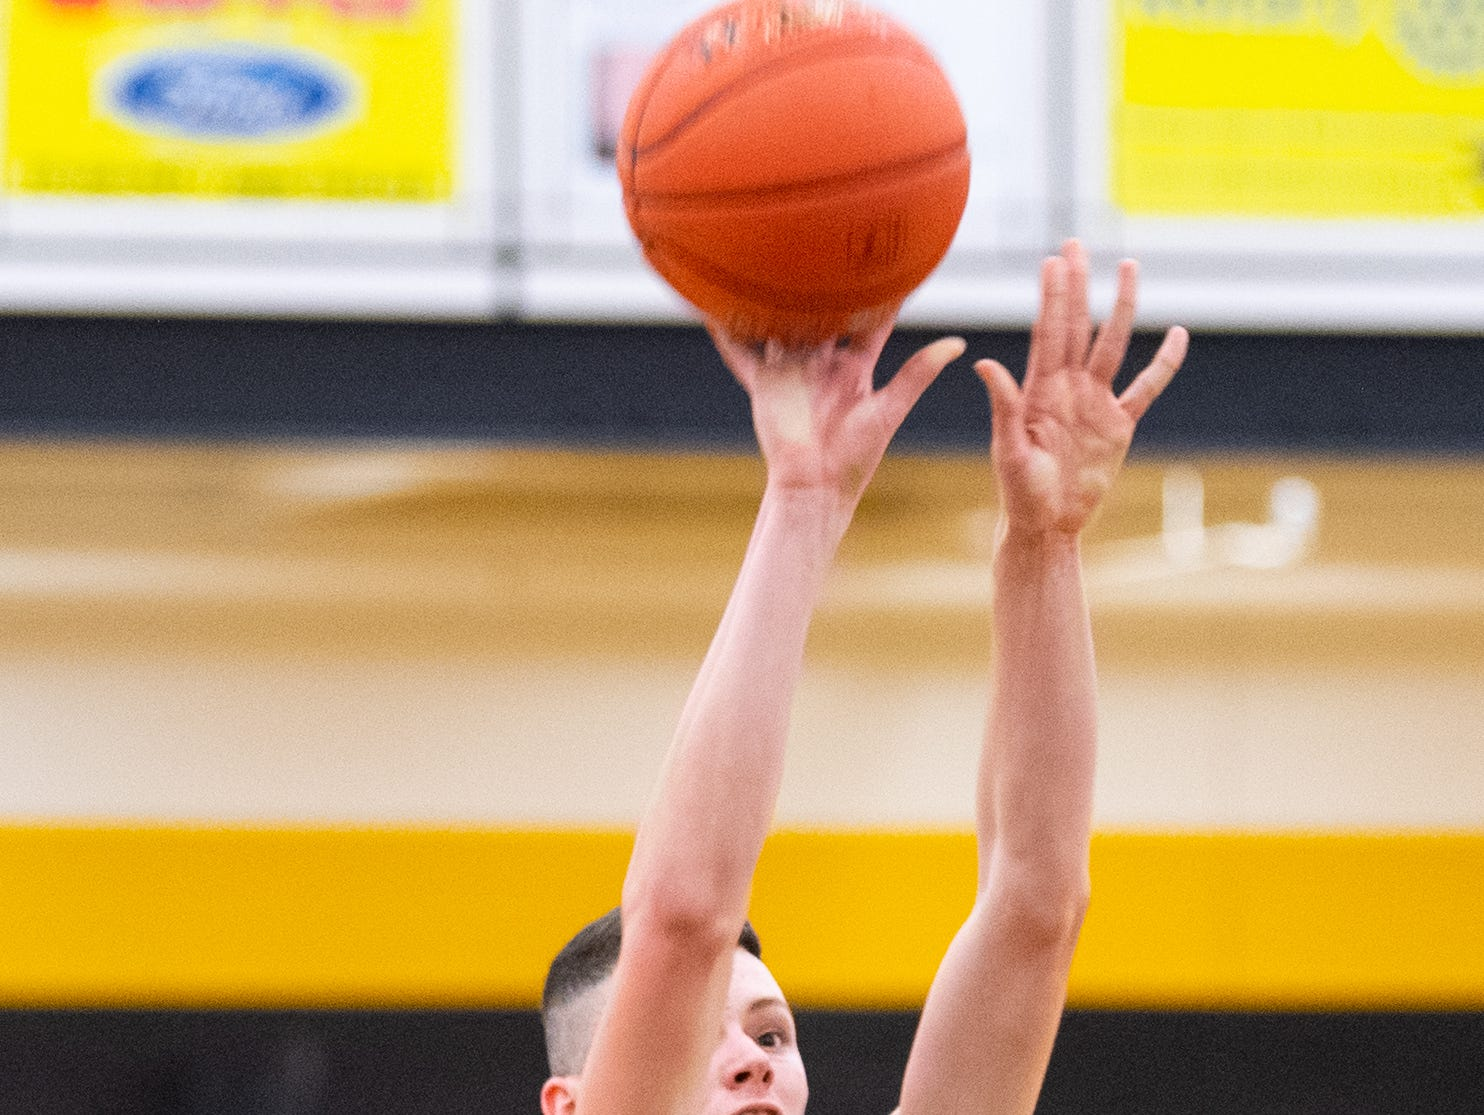 Brayden Staub (42) shoots a foul shot during the YAIAA boys' basketball semifinals between York High and Littlestown, Wednesday, February 13, 2019 at Red Lion Area High School. The Bearcats defeated the Thunderbolts 74 to 51.